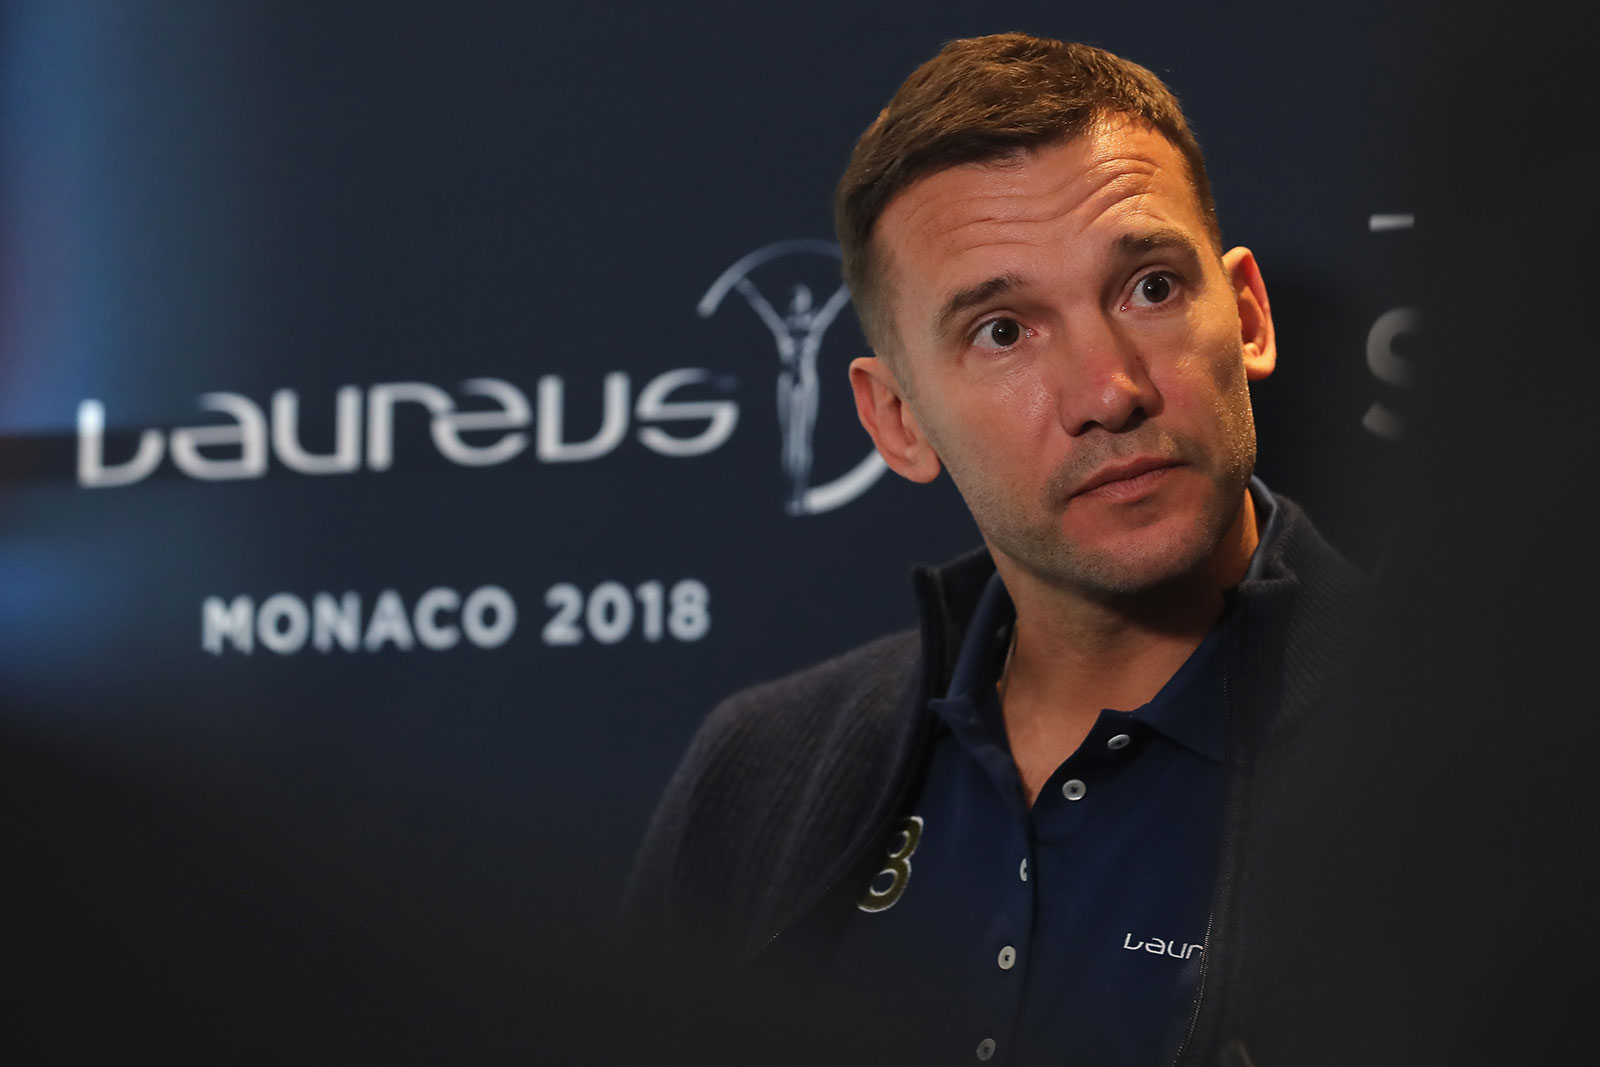 Andriy Shevchenko is interviewed prior to the Laureus World Sports Awards at the Meridien Beach Plaza on February 27, 2018 in Monaco, Monaco. (Photo by Boris Streubel/Getty Images for Laureus)